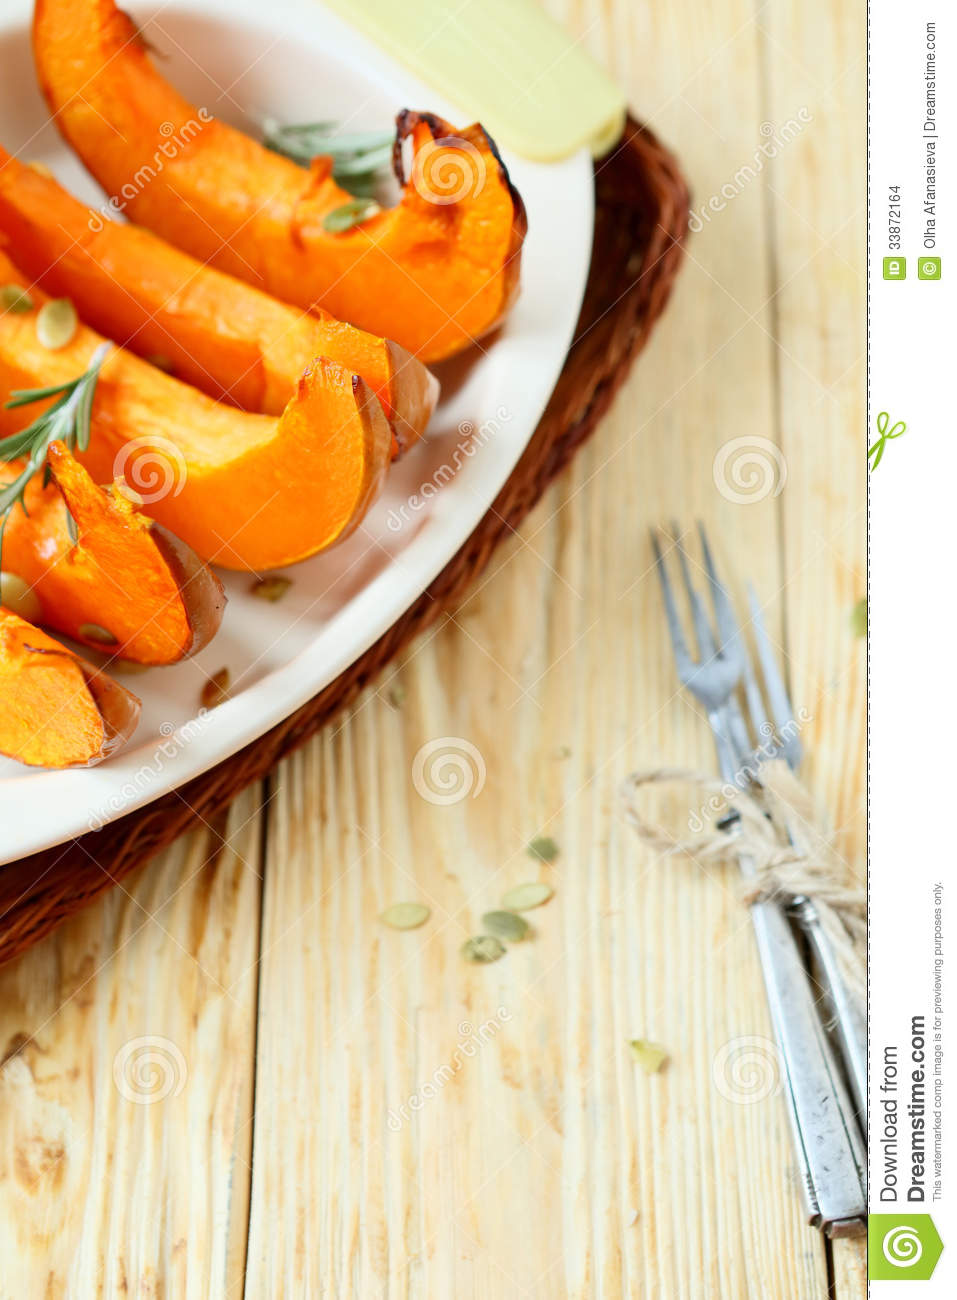 Baked Pumpkin Slices In A Baking Dish Stock Images - Image: 33872164